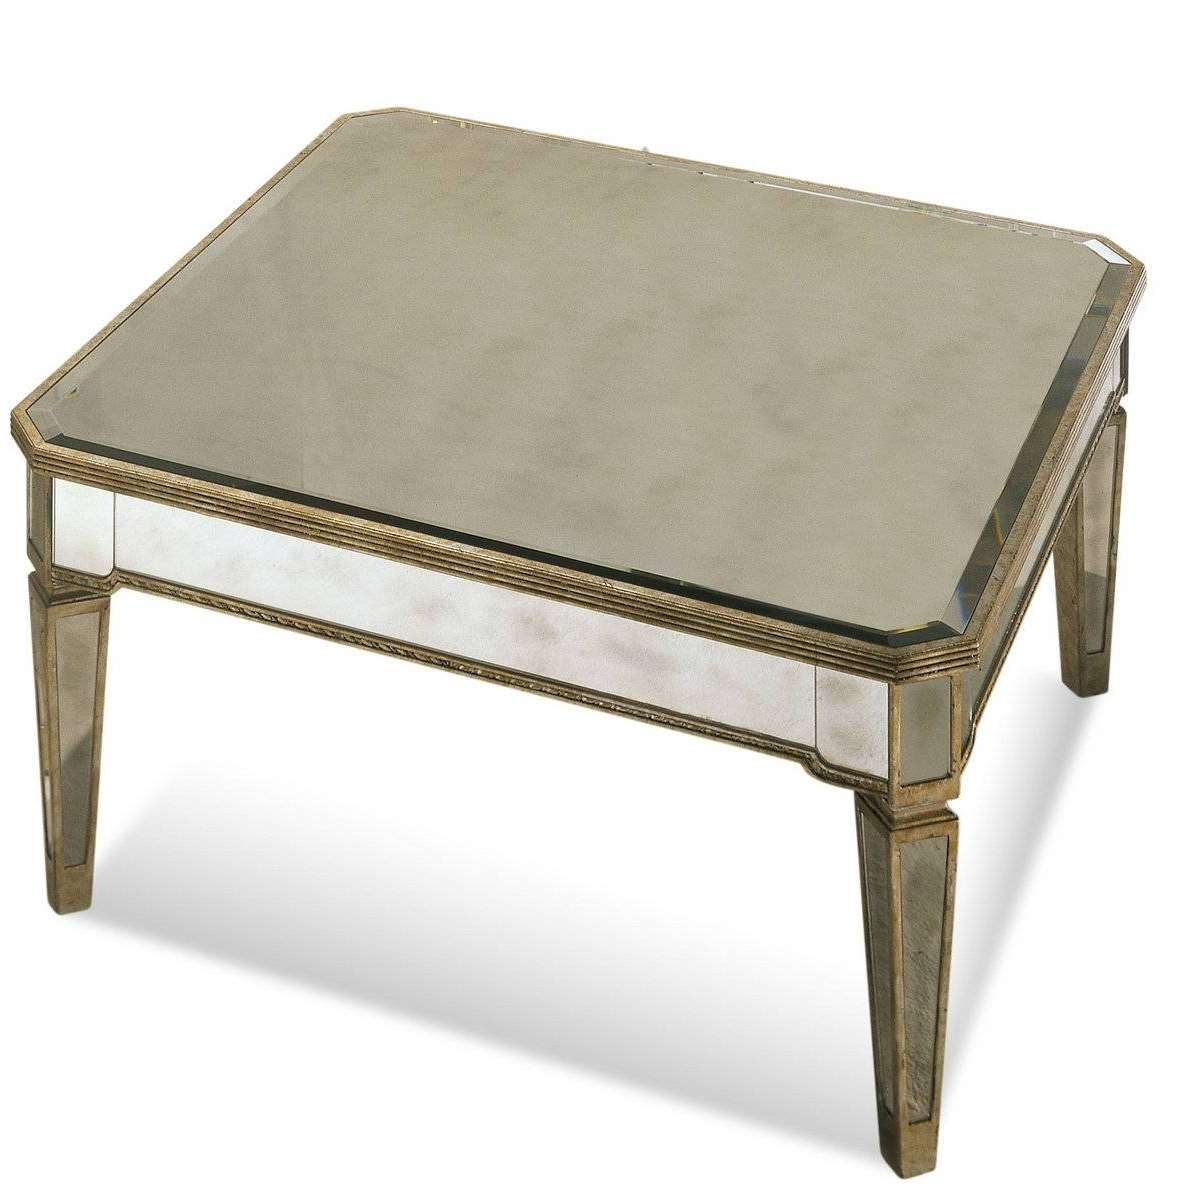 Newest Small Mirrored Coffee Tables Pertaining To Antique Mirrored Coffee Table Home Design (View 13 of 20)